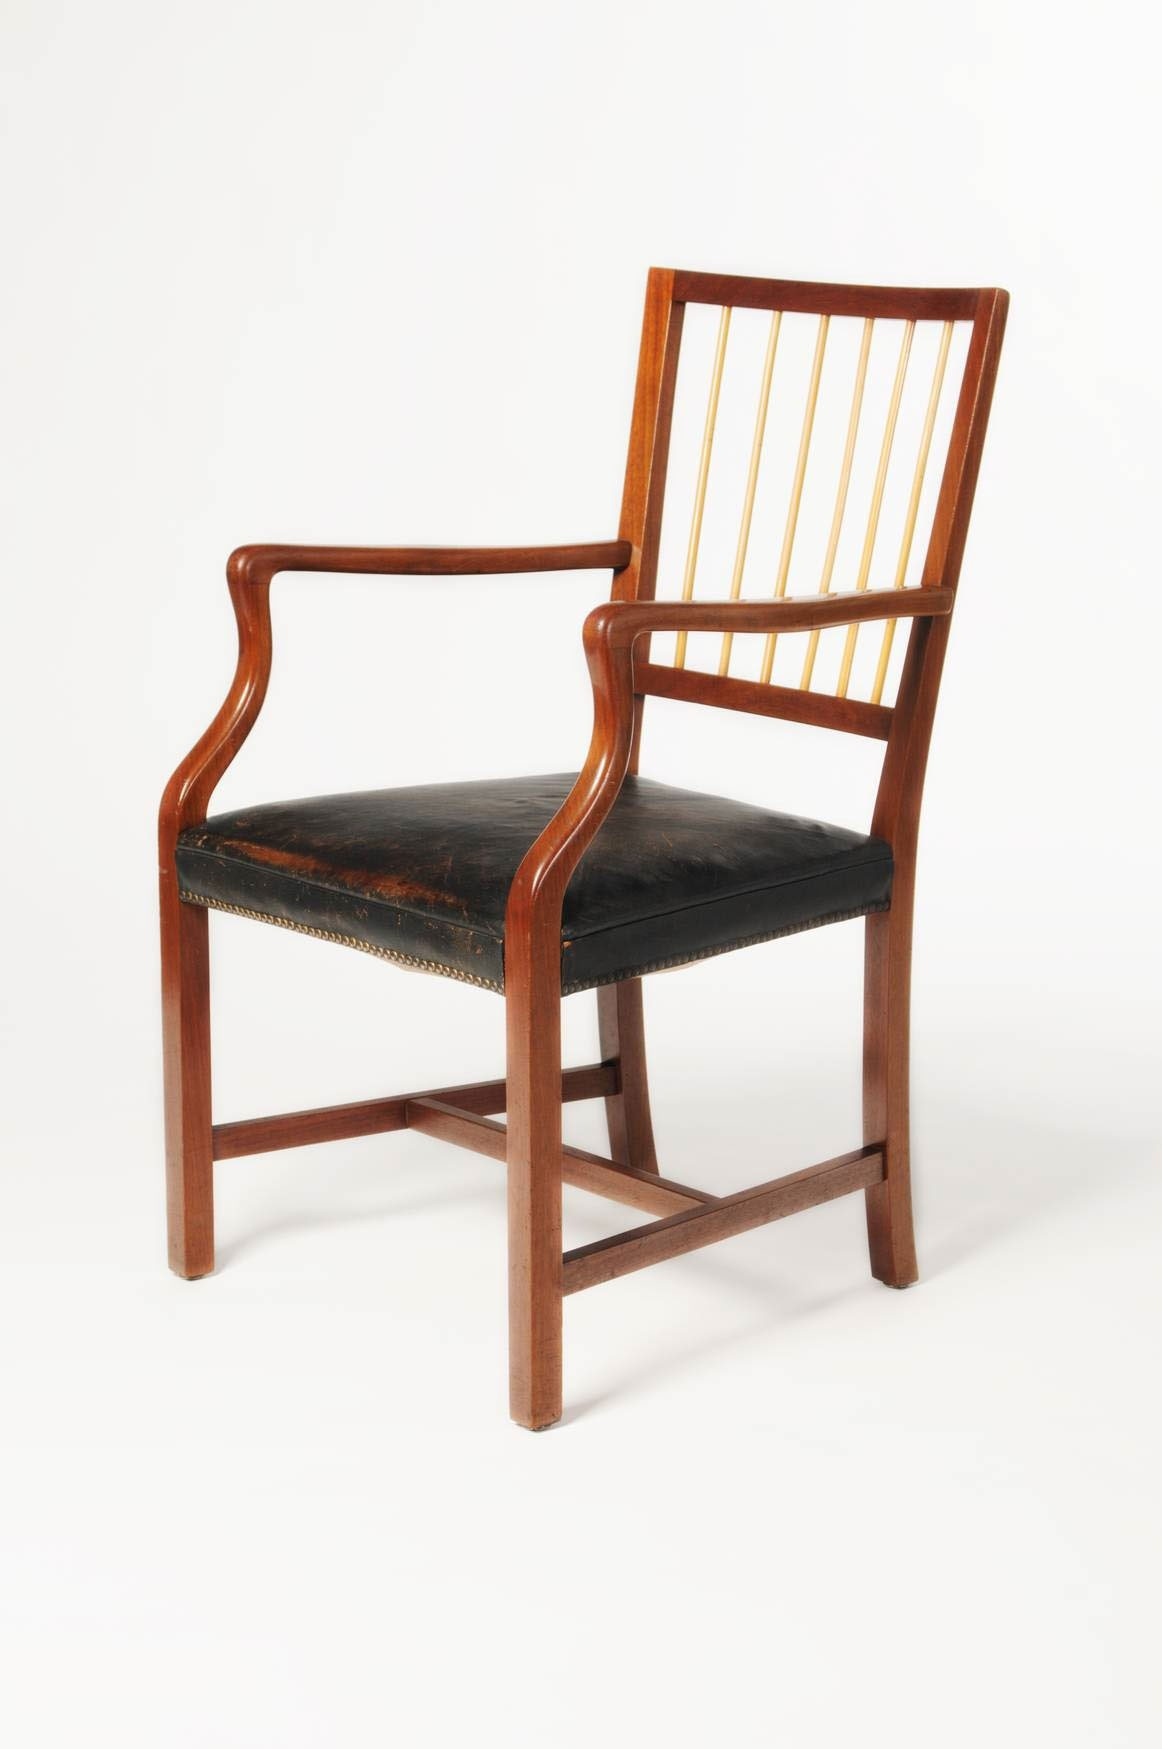 <BODY>Josef Frank, Armchair, Vienna, 1933<br />Mahogany, solid; rattan; upholstery with black leather cover<br />© MAK/Nathan Murrell</BODY>